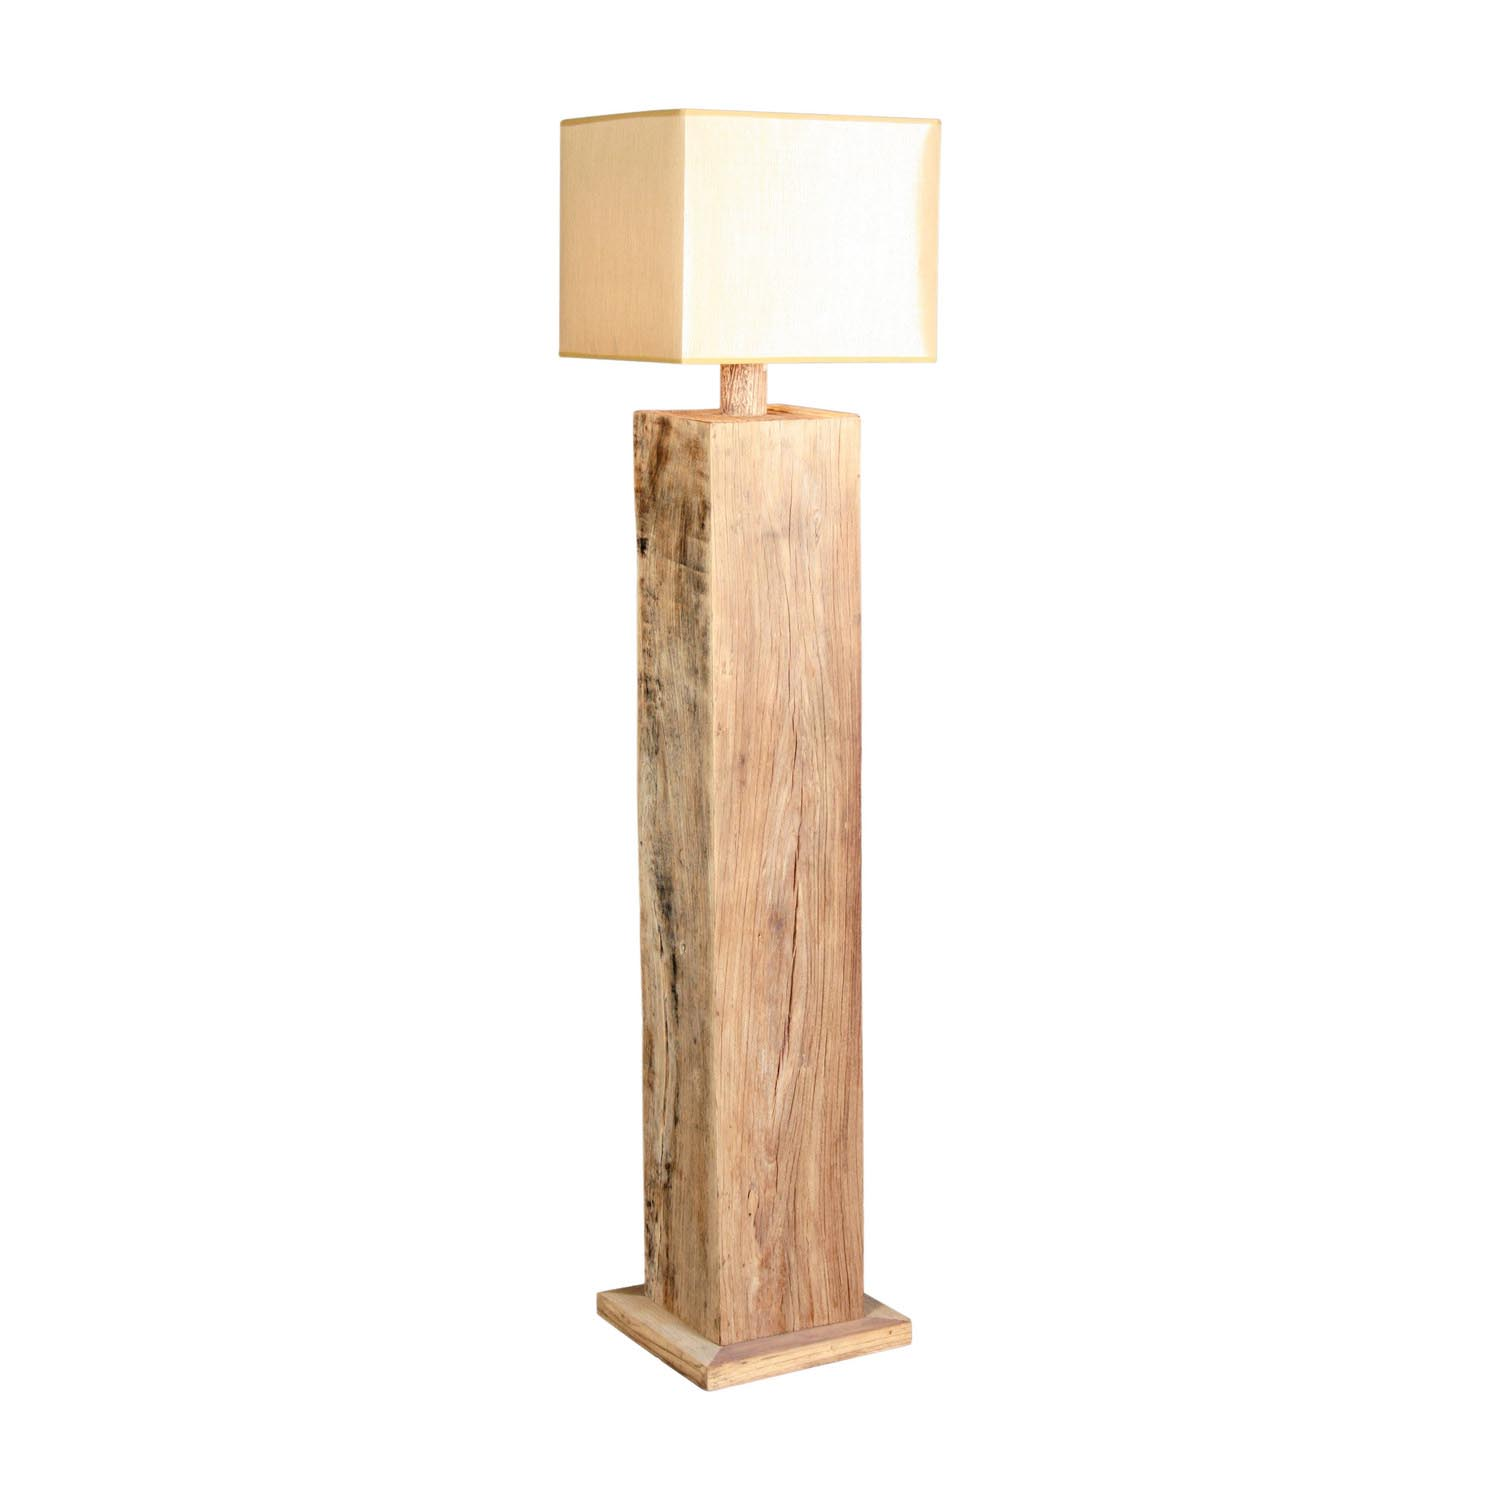 Wooden floor lamps ikea light fixtures design ideas for Make wooden floor lamp